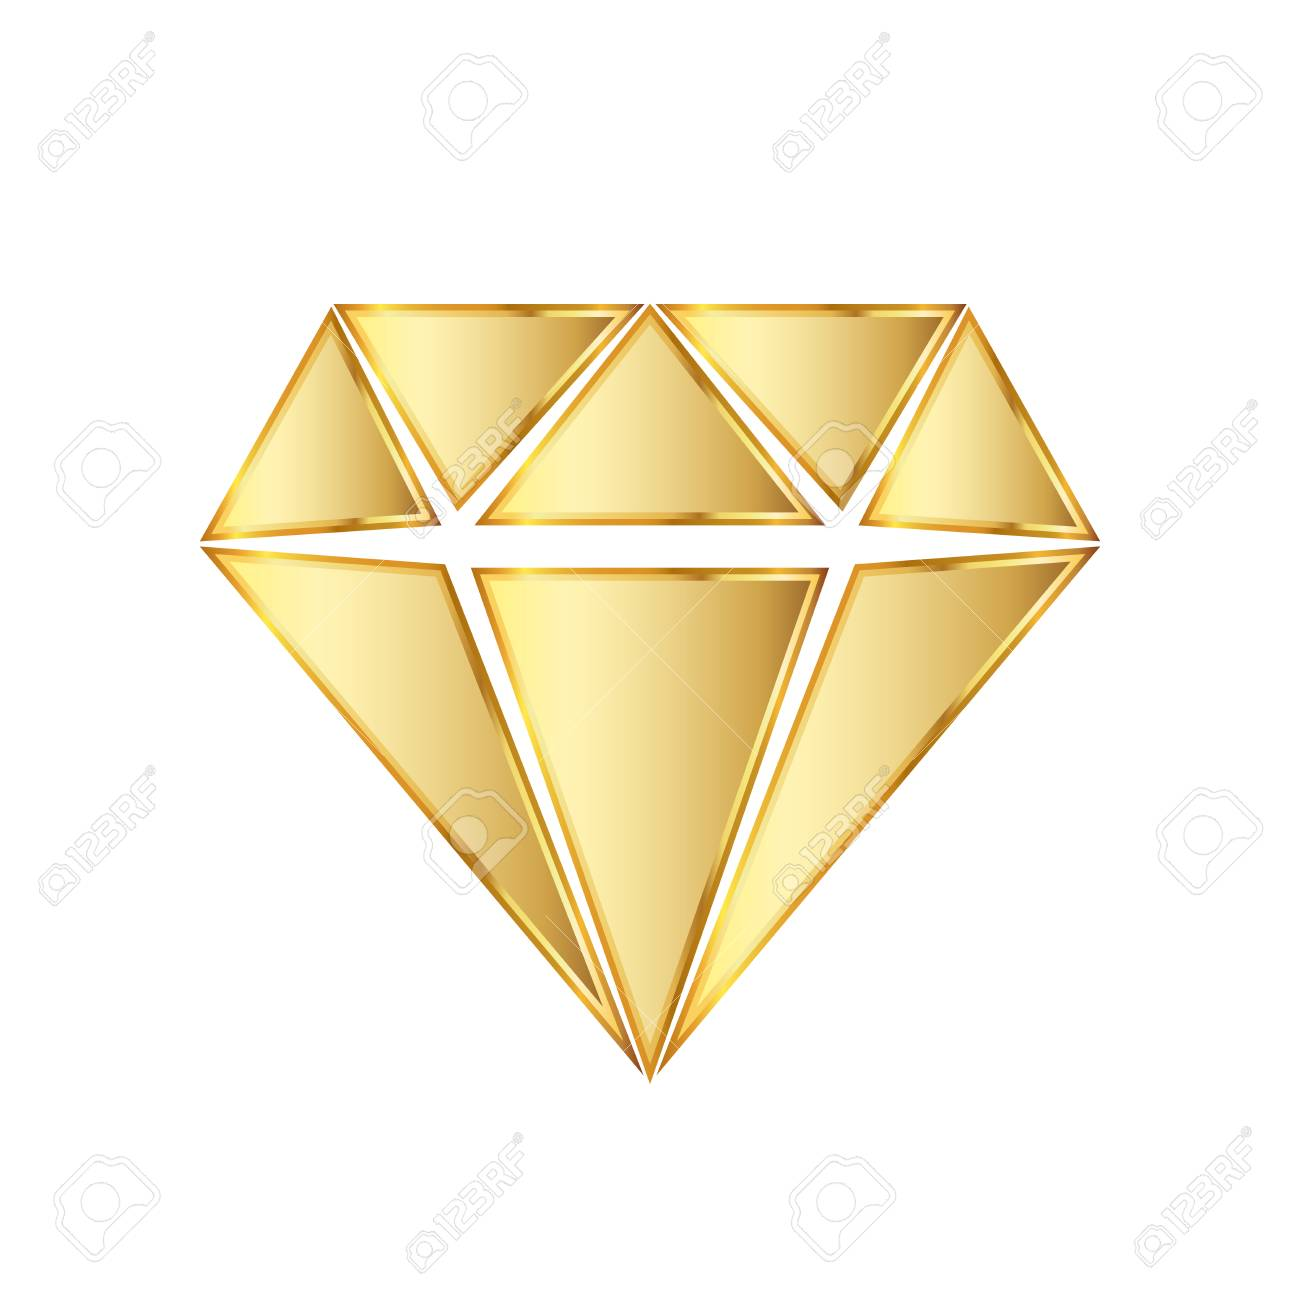 Golden diamond icon  illustration  Golden diamond symbol on white